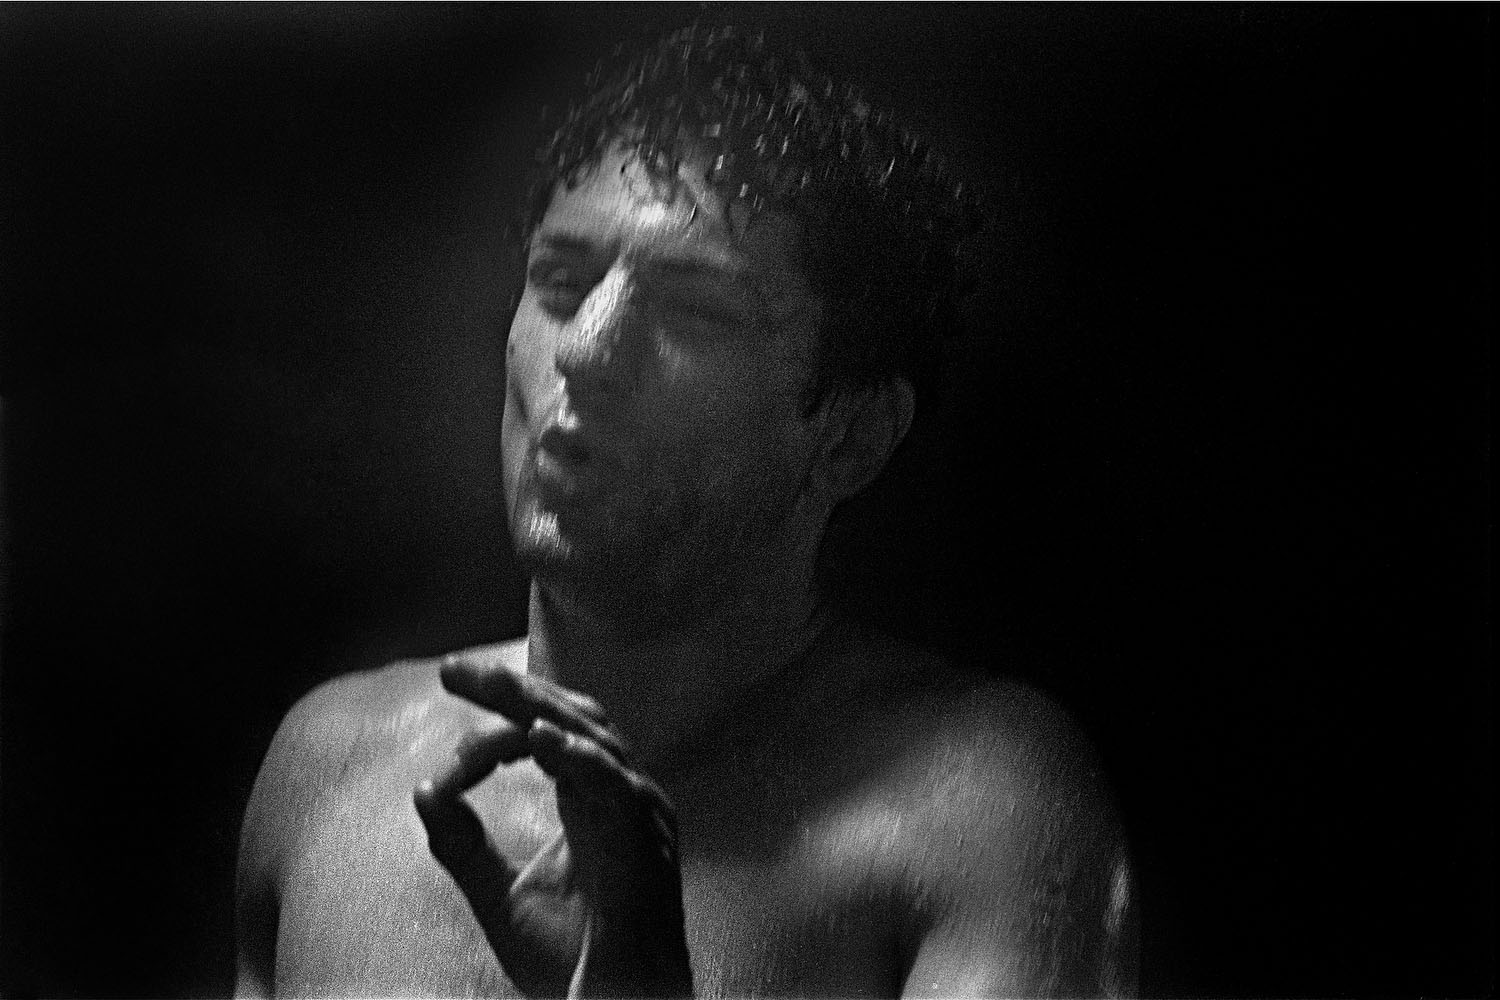 In the sauna, a scene where LaMotta is trying to lose weight before a fight.